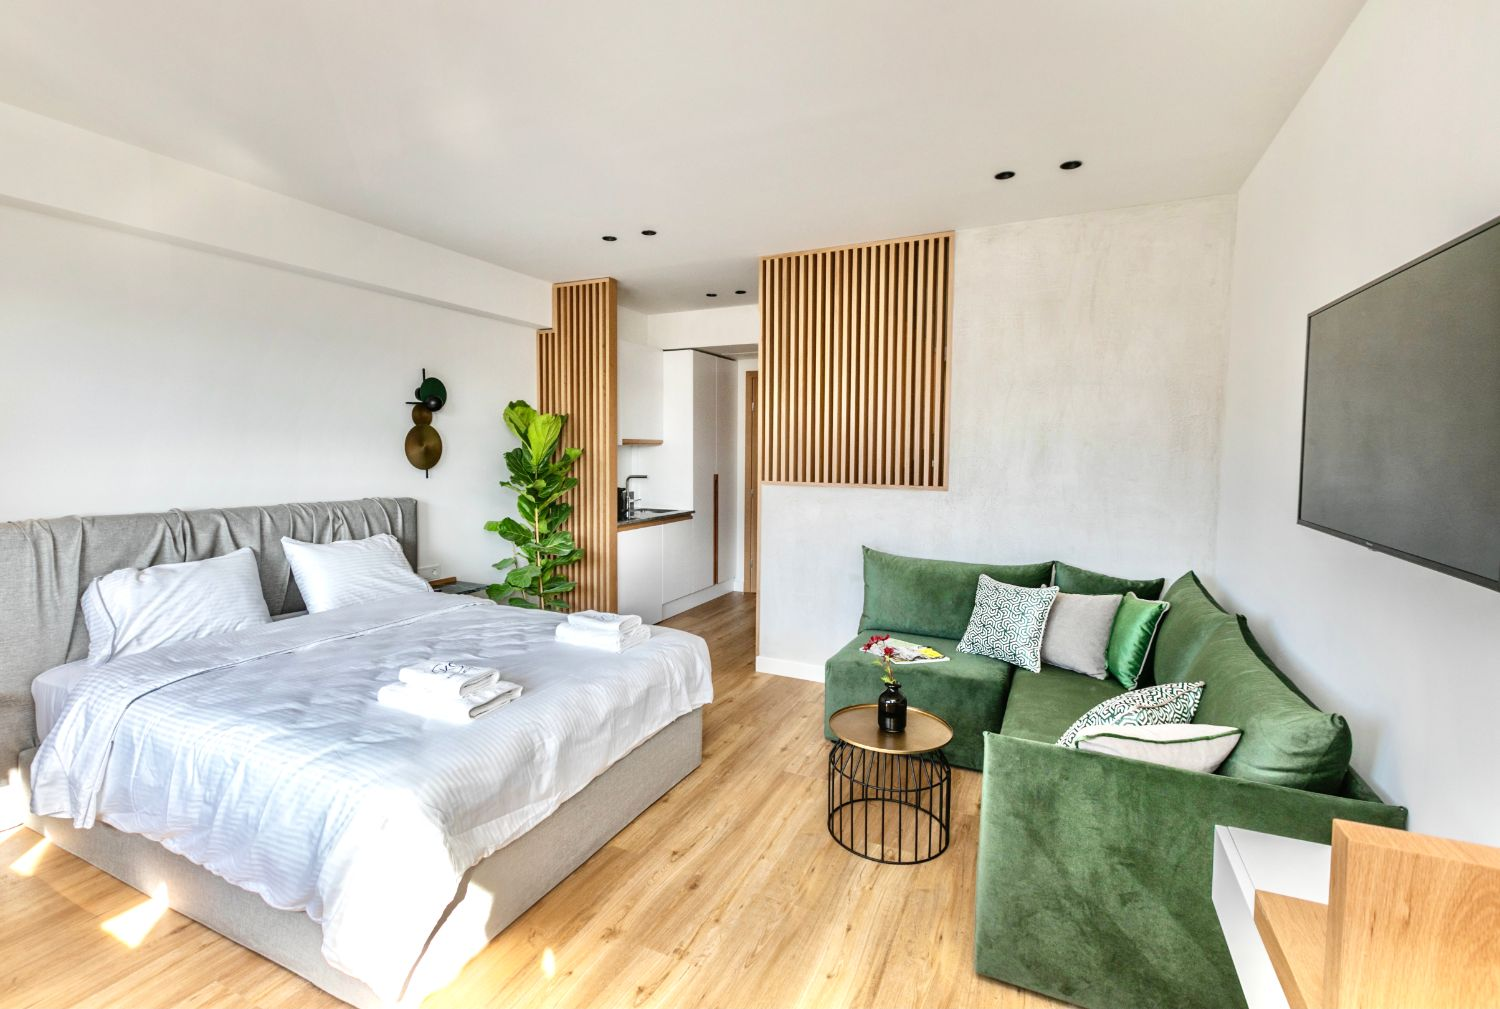 #706 Double Bed and Sitting Area